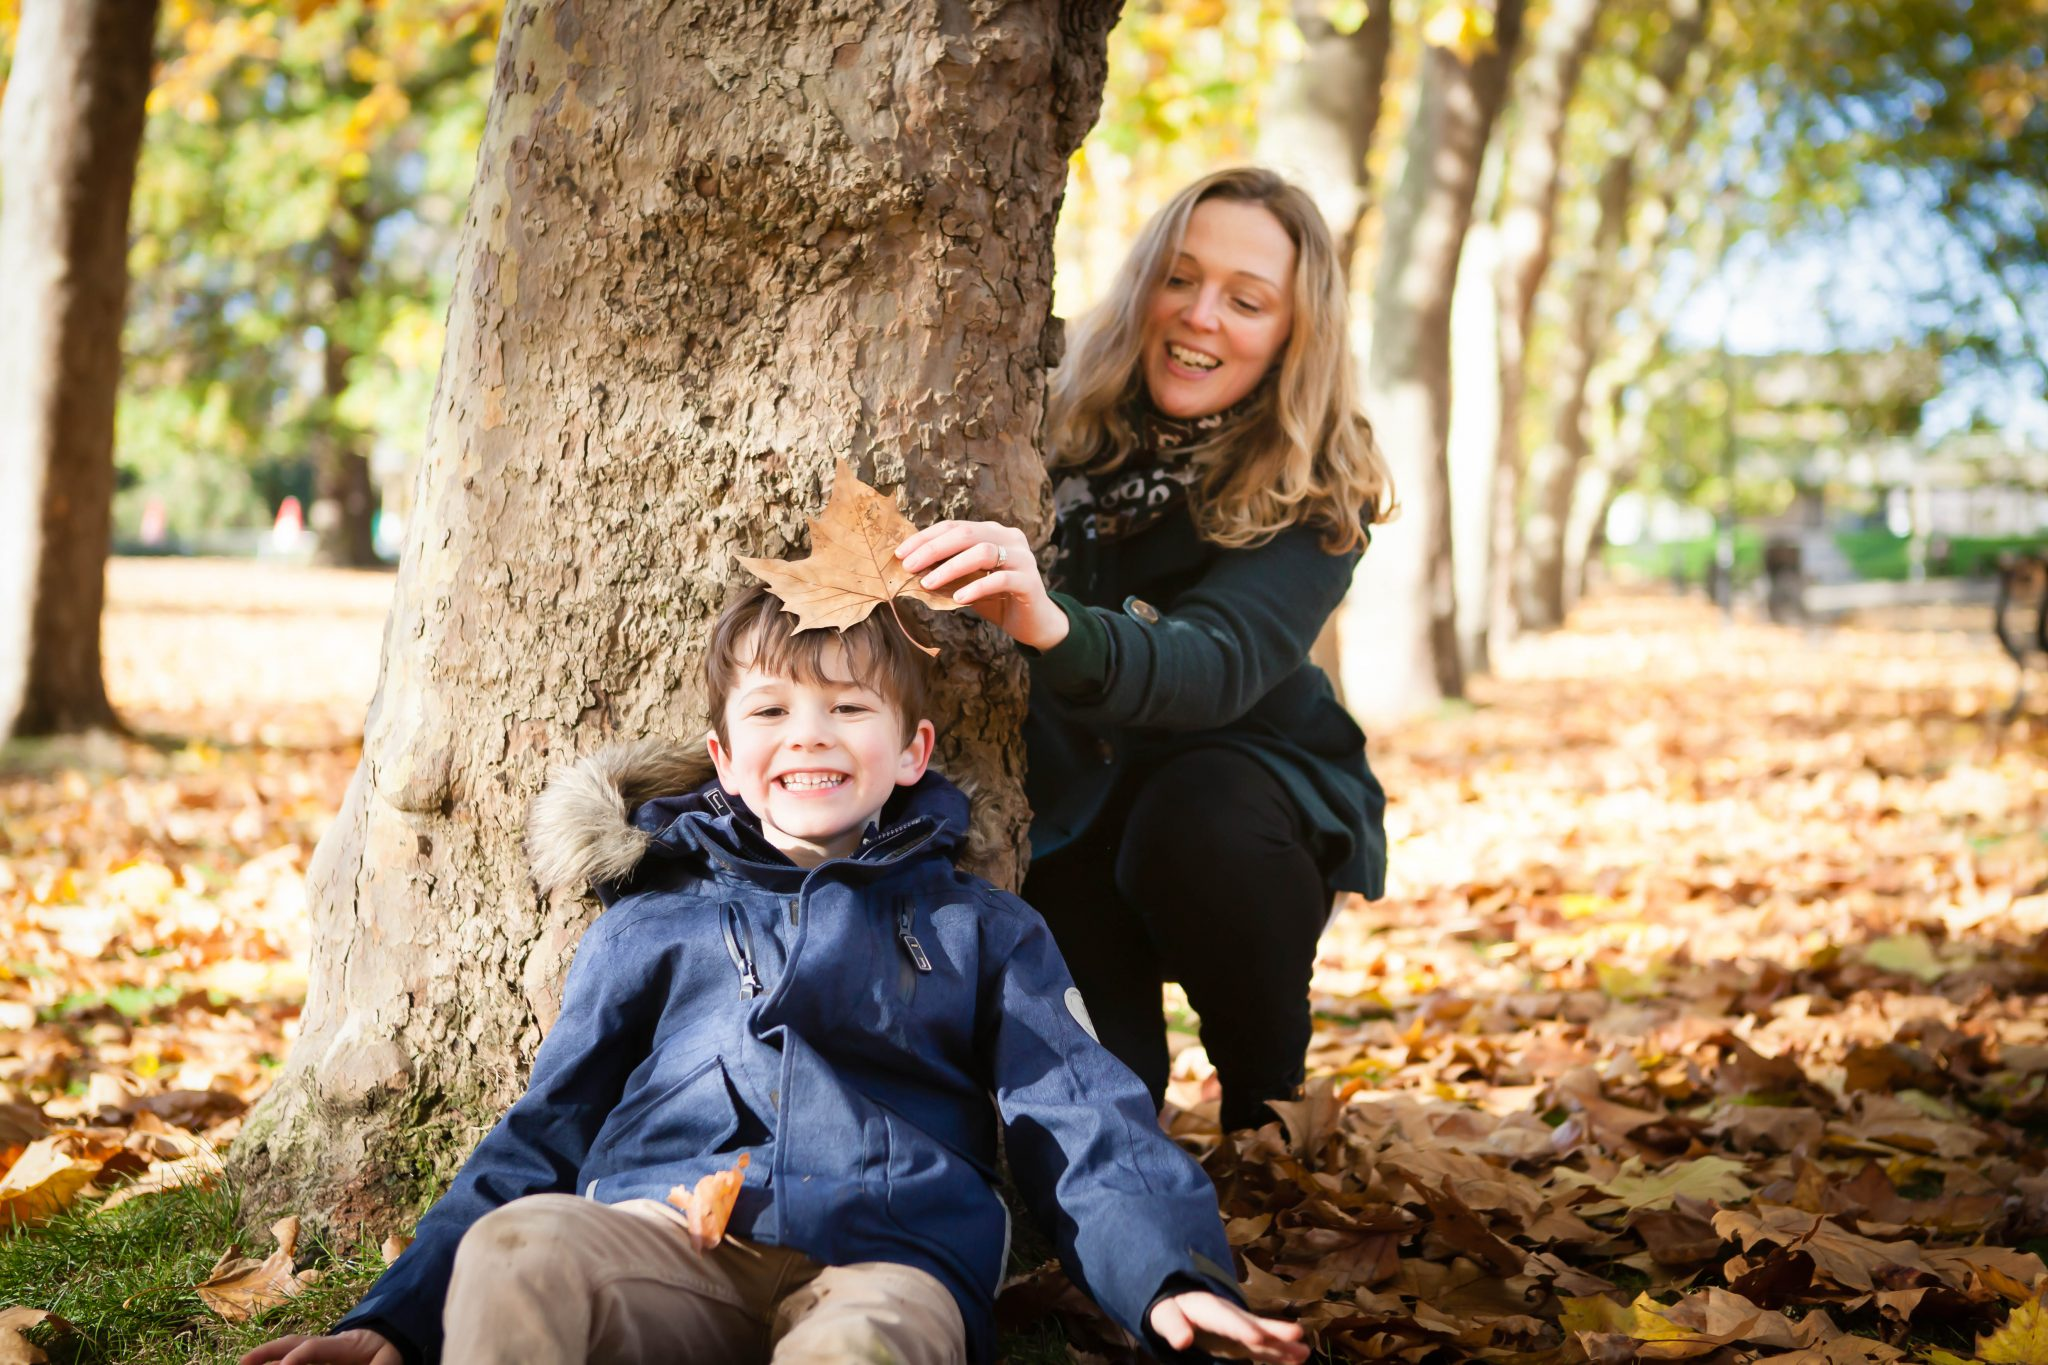 Family fun outside with mum and son photographed playing around a tree with leaves and playing hide and seek